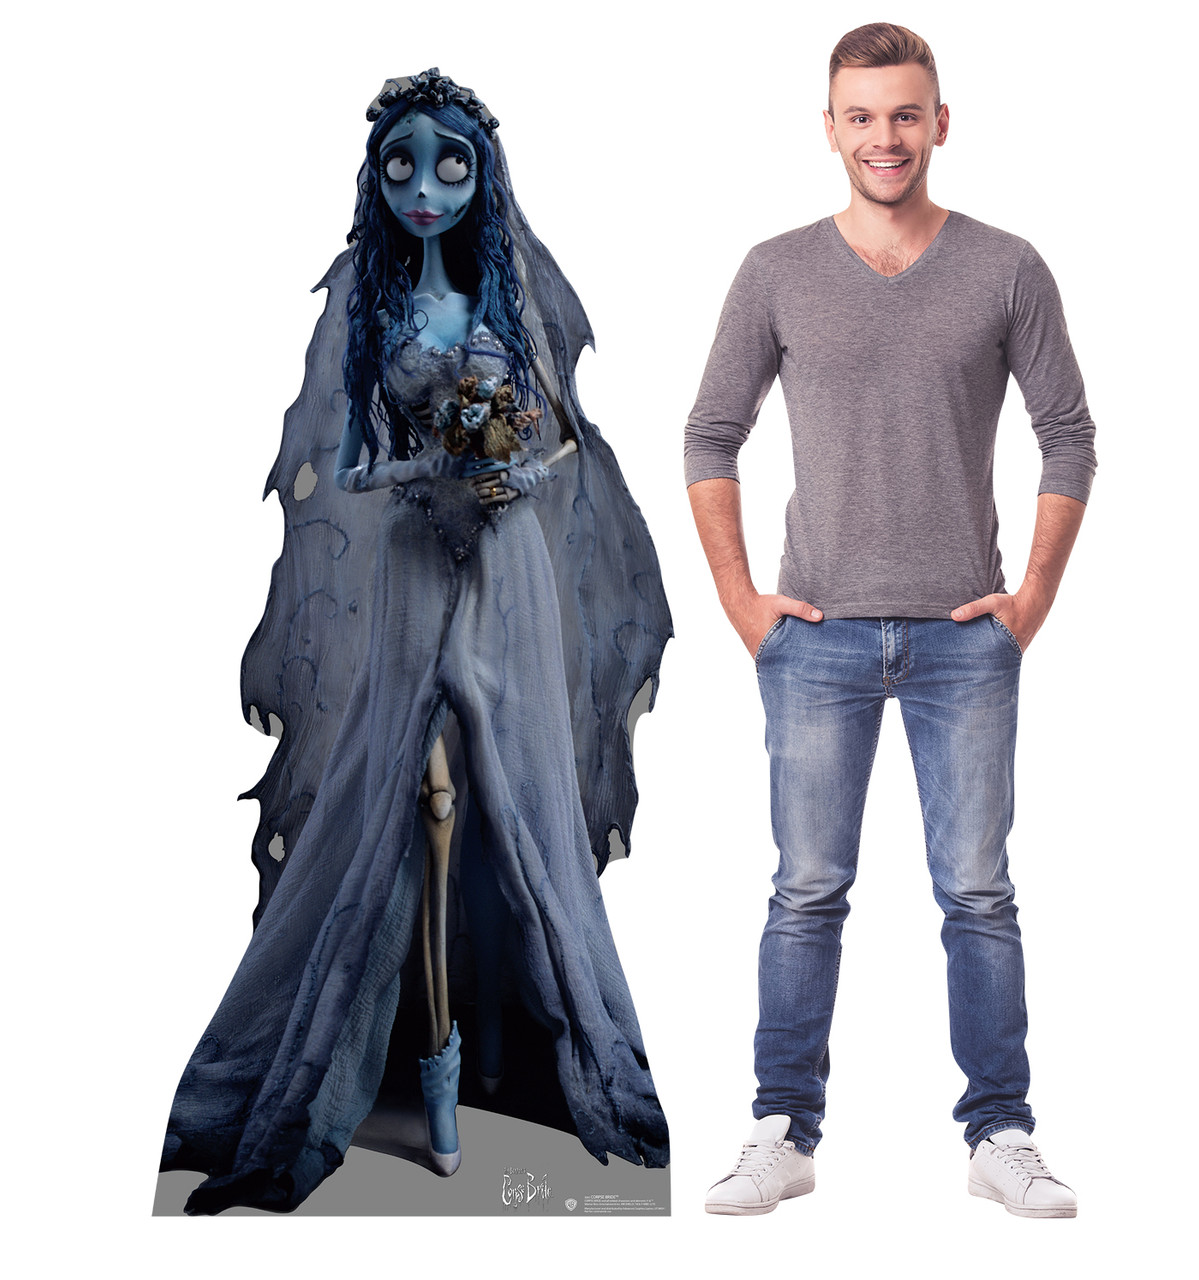 Life-size cardboard standee of The Corpse Bride with model.